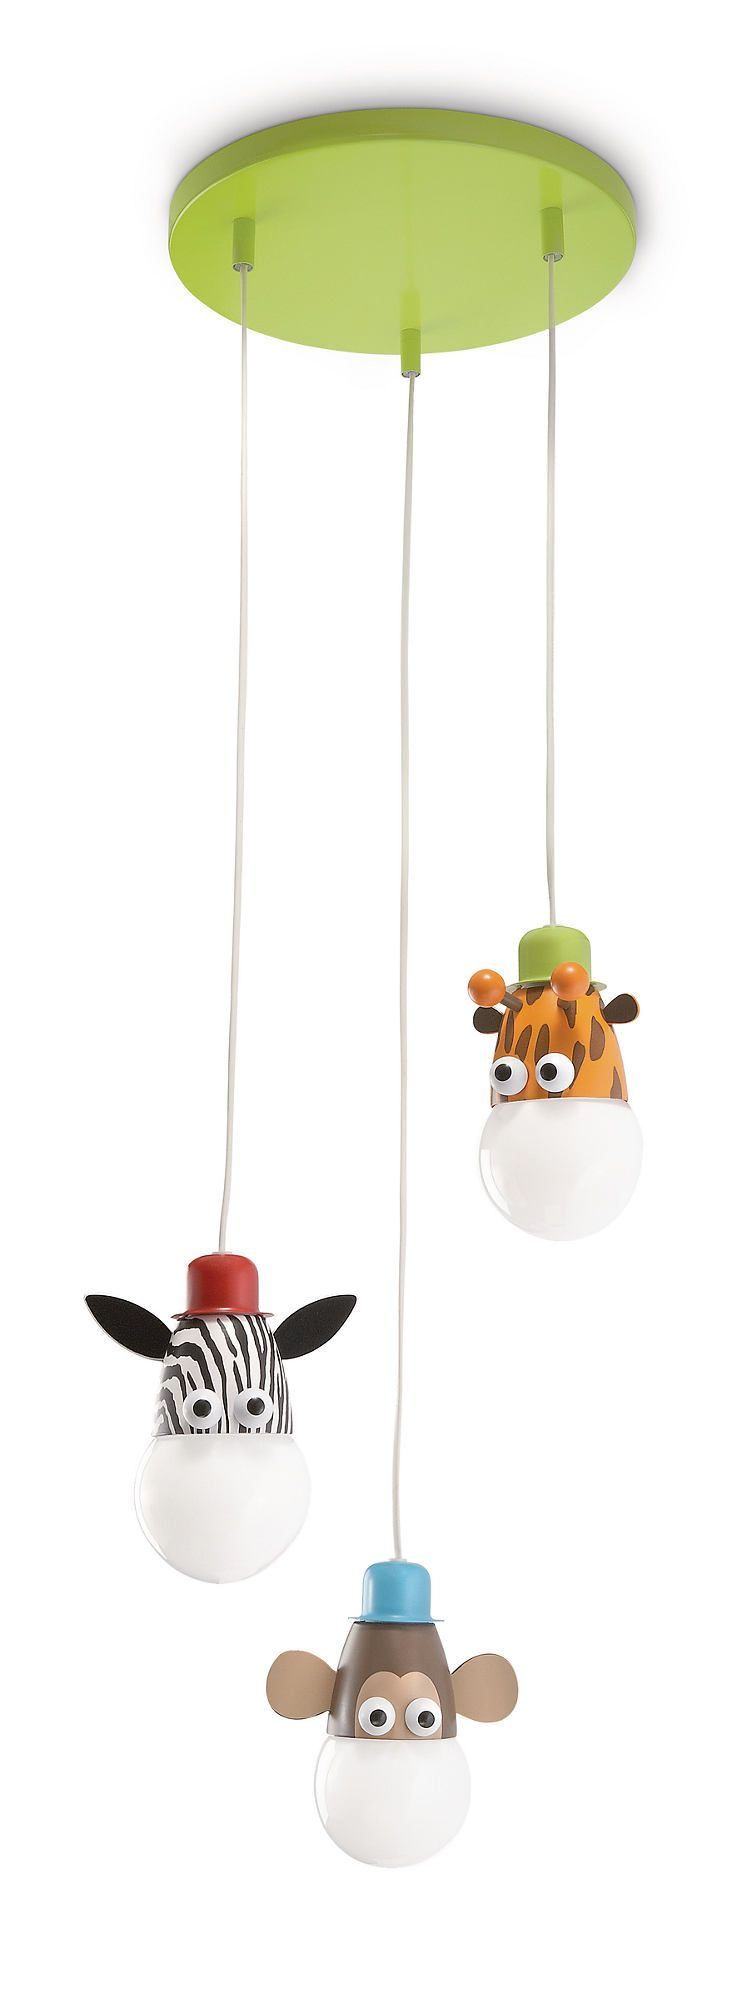 ... MYKIDSROOM BY PHILIPS KINDERLAMP 405945516 PHILIPS MYKIDSROOM PHILIPS